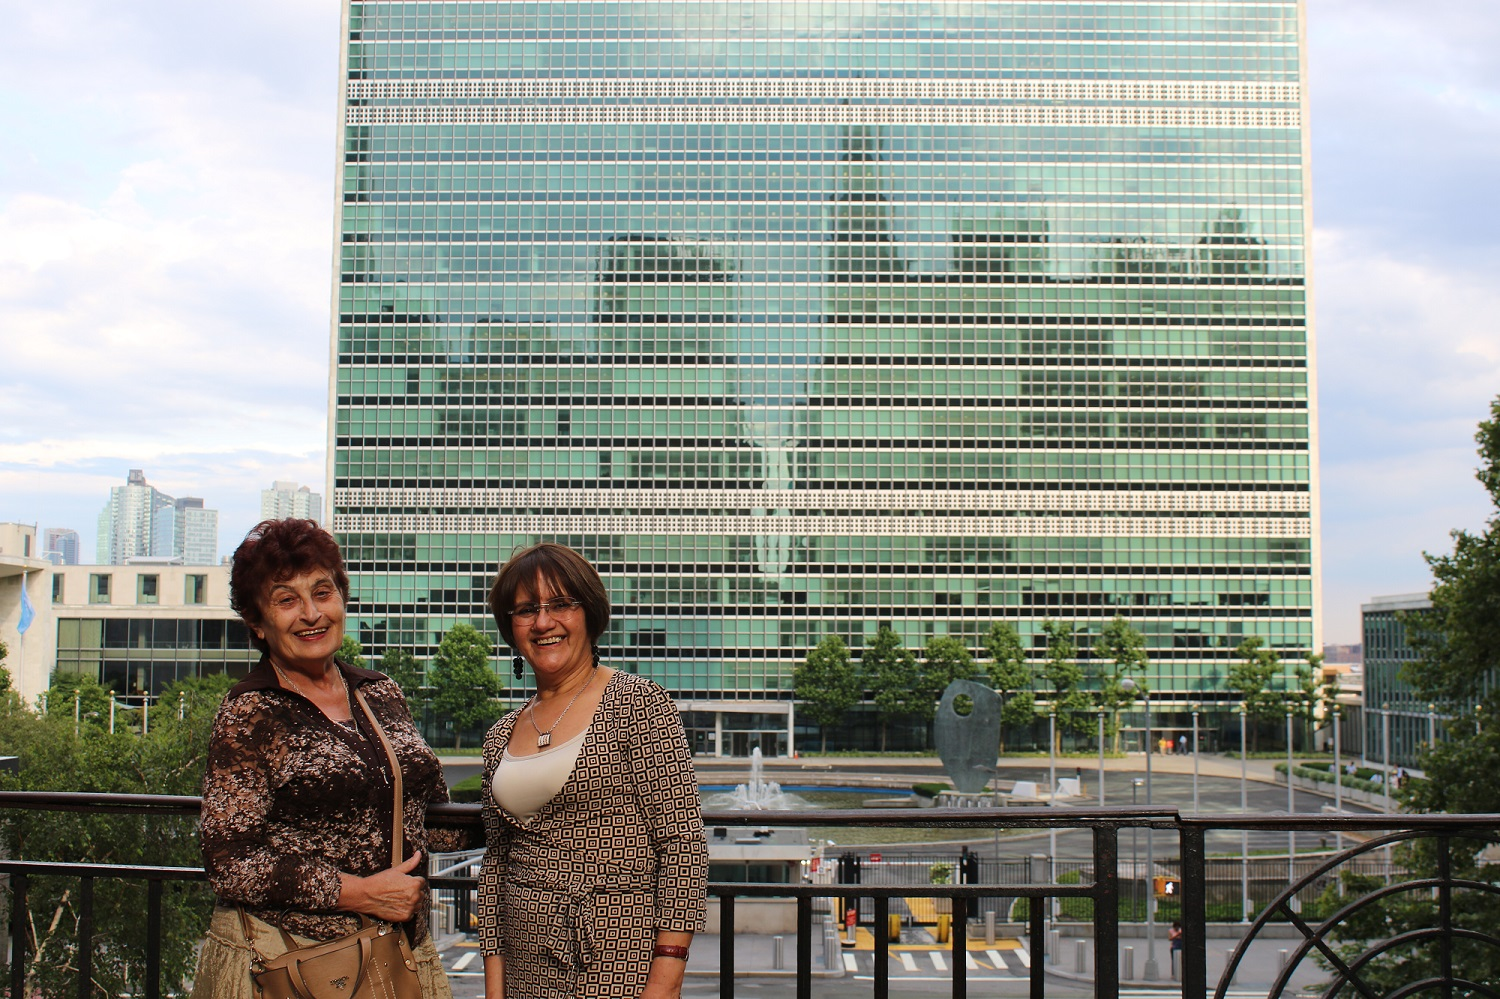 Ruth and Mira at the 2017 Open-ended Working Group at the UN in New York (c) Jemma Stovell/HelpAge International